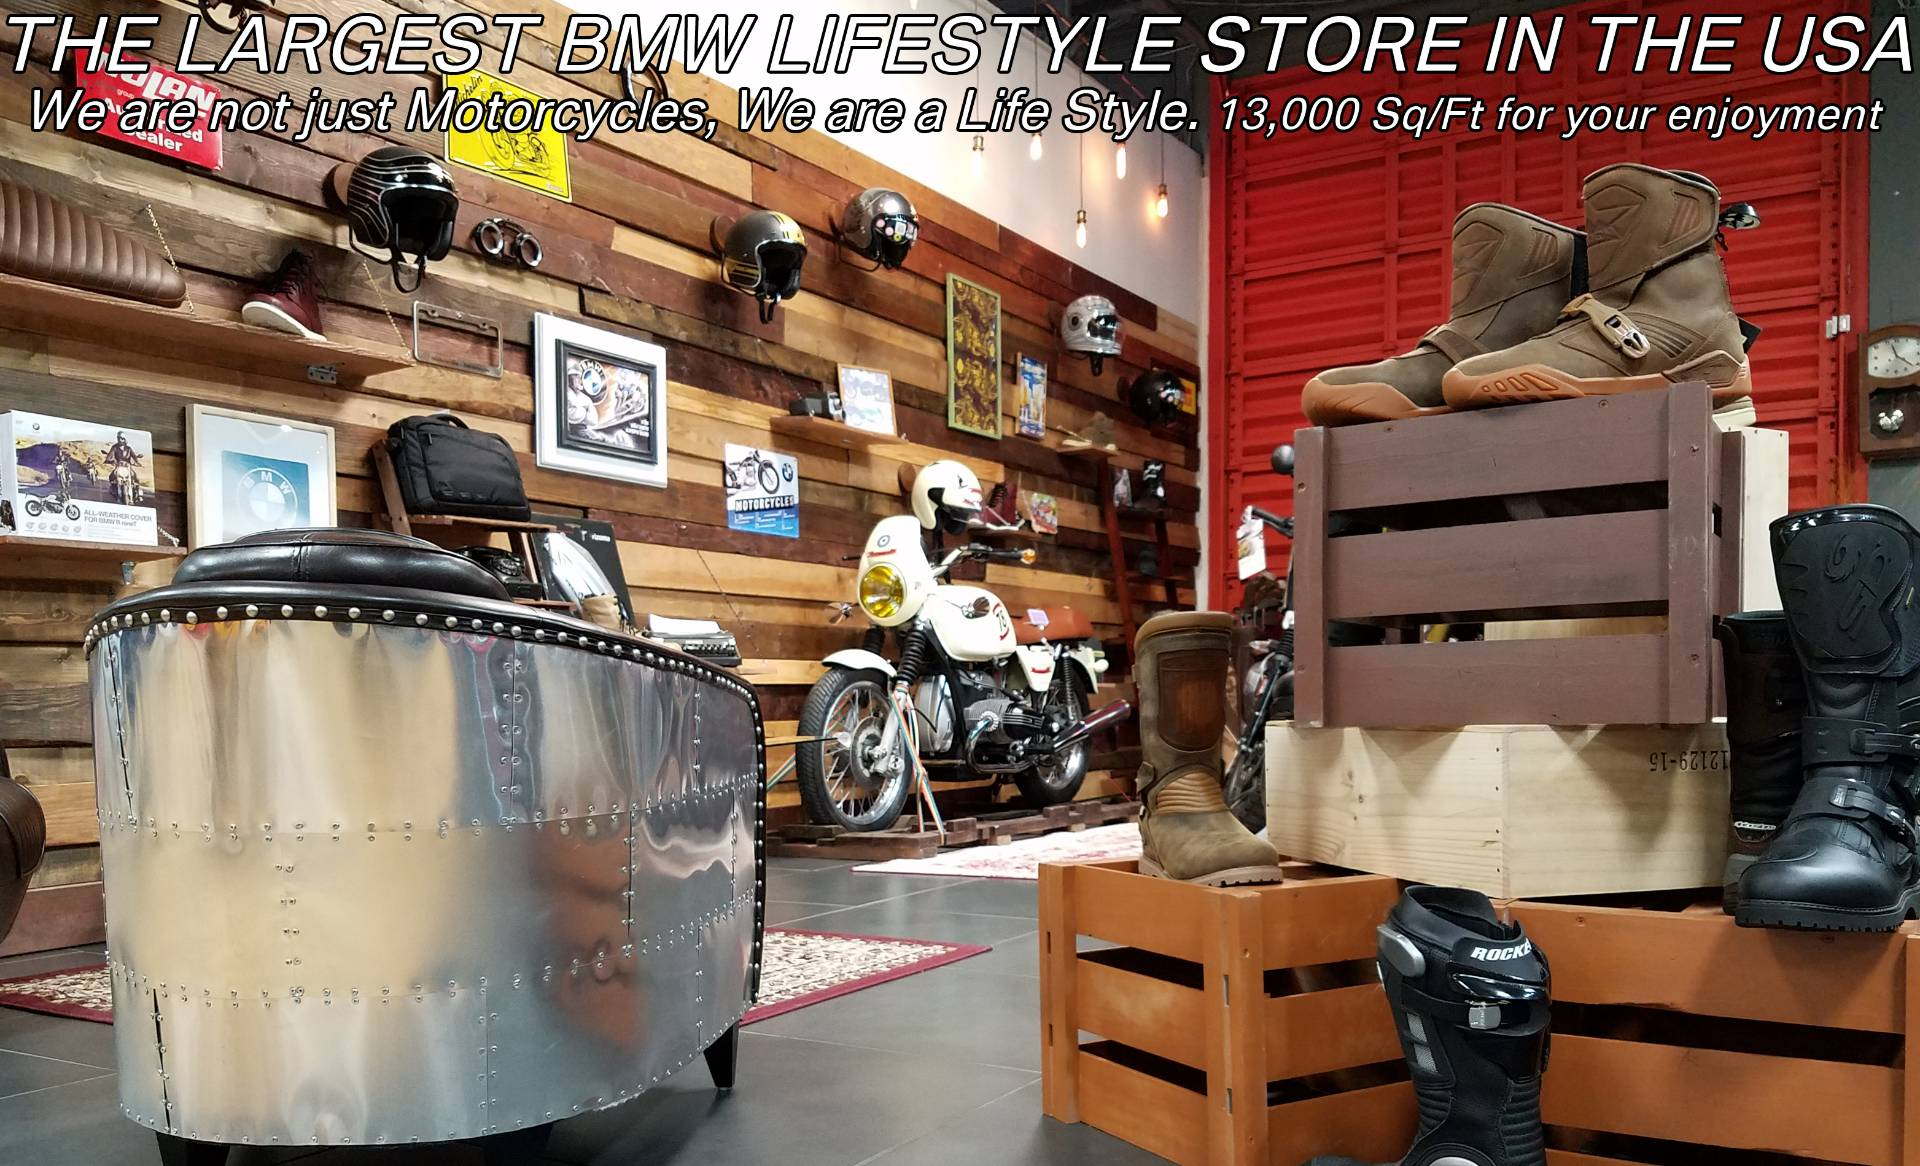 New 2019 BMW R 1250 GS for sale, New BMW for sale R 1250GS, New BMW Motorcycle R1250GS for sale, new BMW 1250GS, R1250GS, GS. BMW Motorcycles of Miami, Motorcycles of Miami, Motorcycles Miami, New Motorcycles, Used Motorcycles, pre-owned. #BMWMotorcyclesOfMiami #MotorcyclesOfMiami. - Photo 44